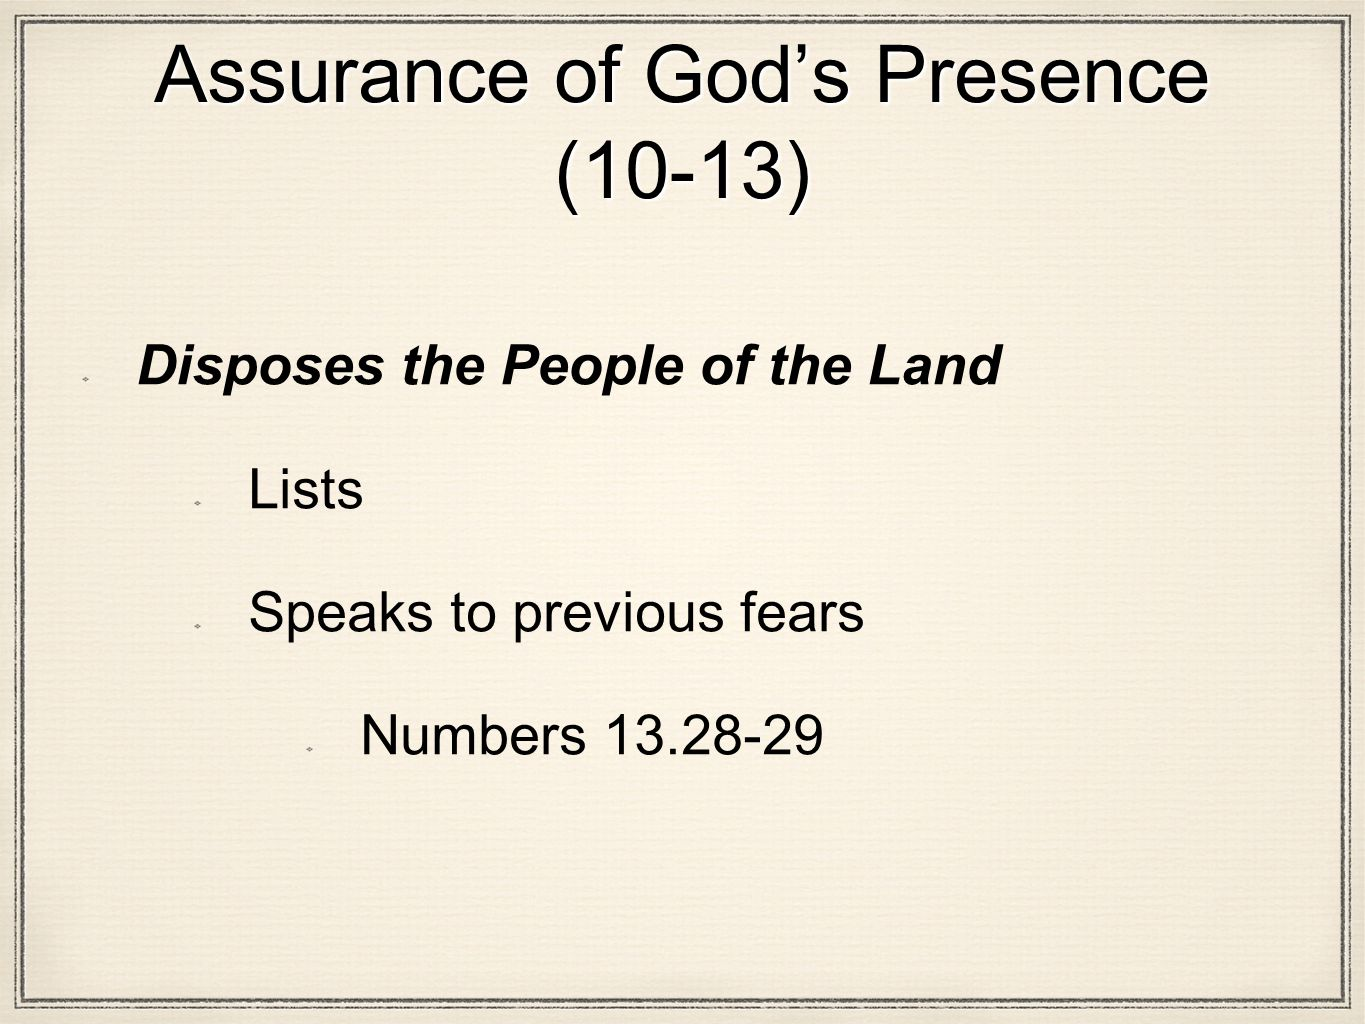 Assurance of God's Presence (10-13) Disposes the People of the Land Lists Speaks to previous fears Numbers 13.28-29